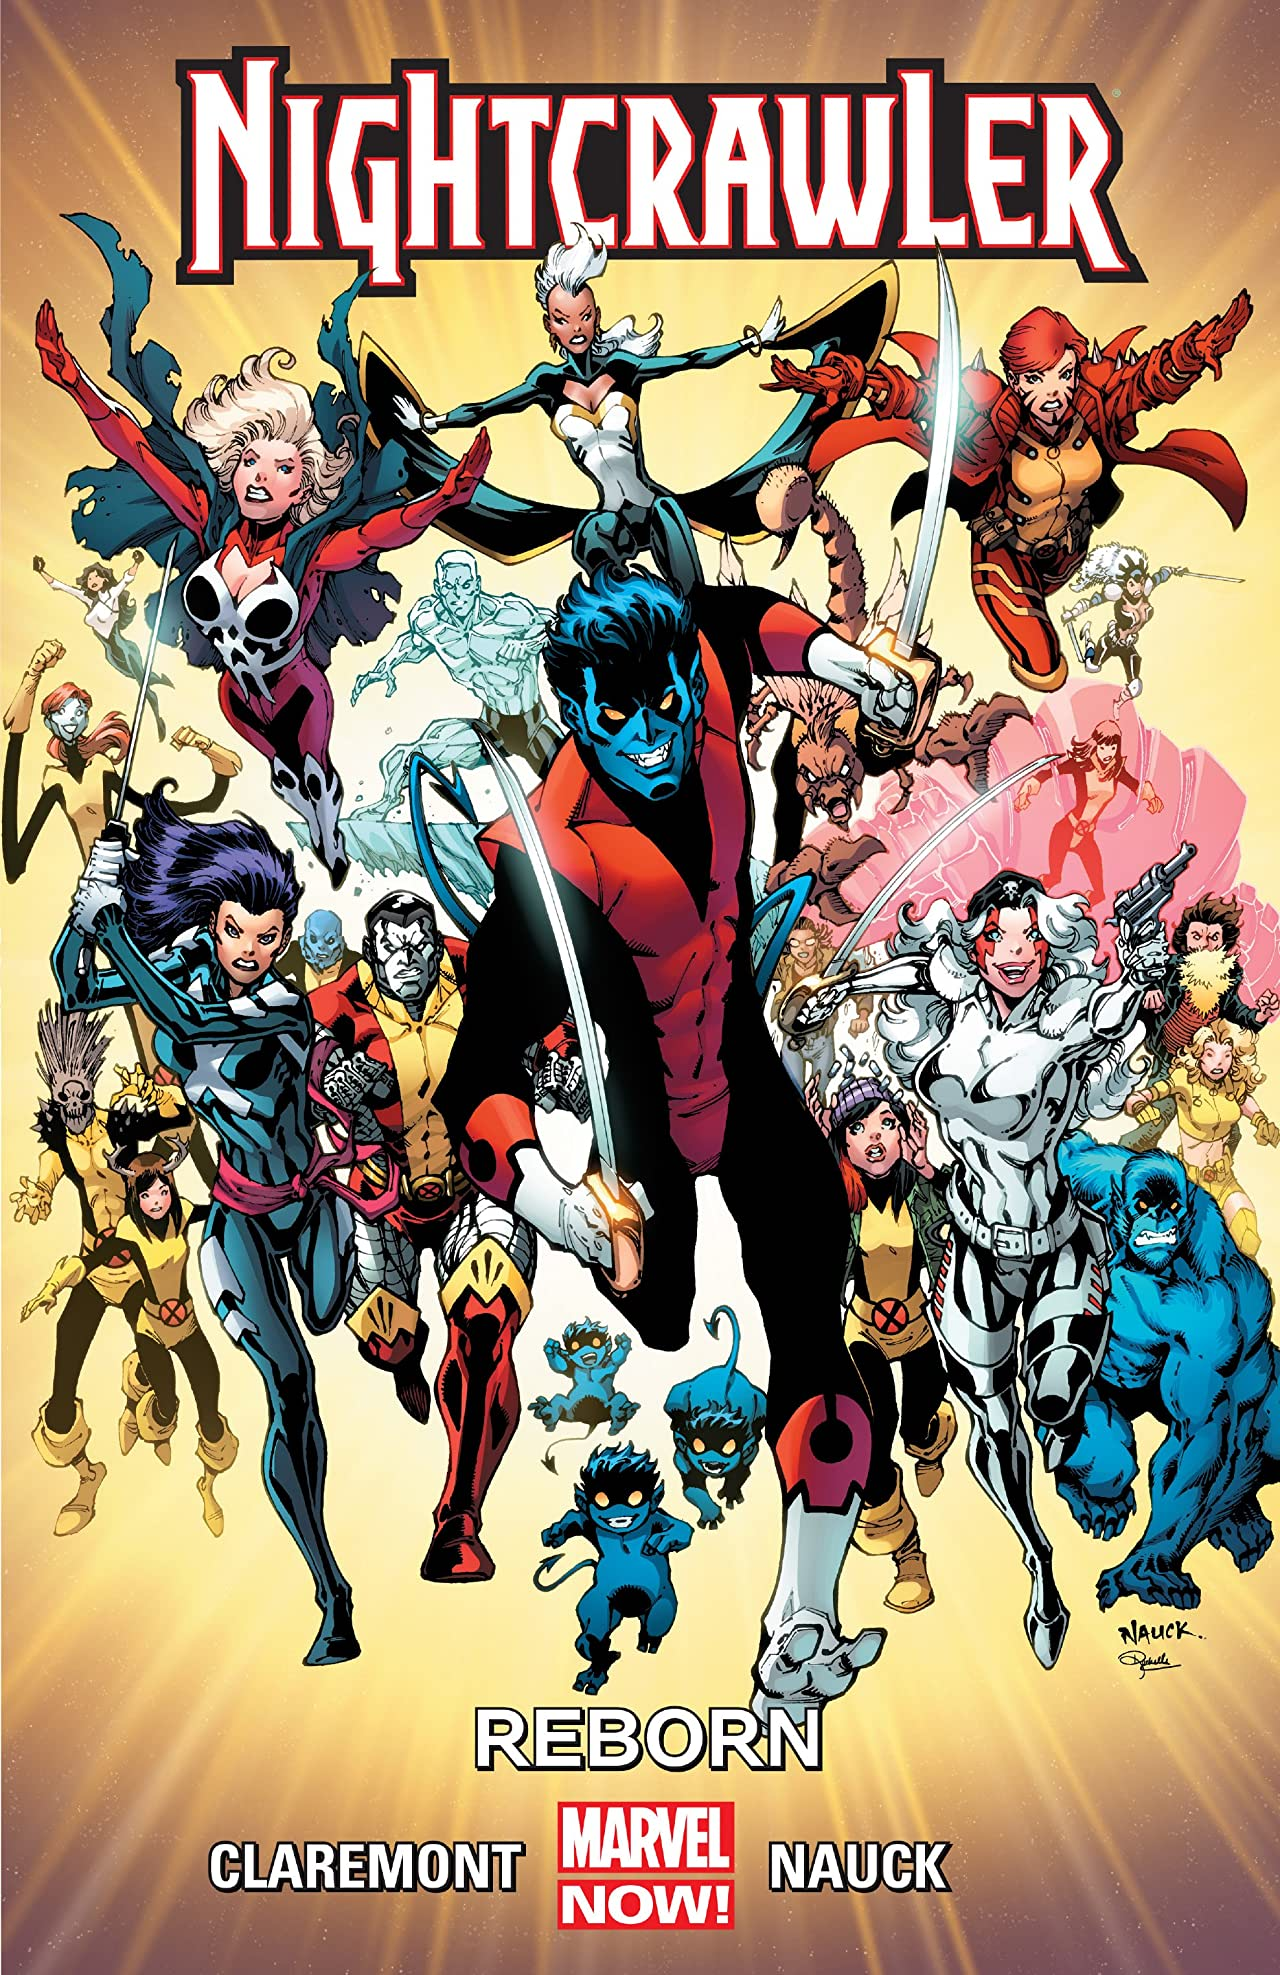 Nightcrawler Vol. 2: Reborn